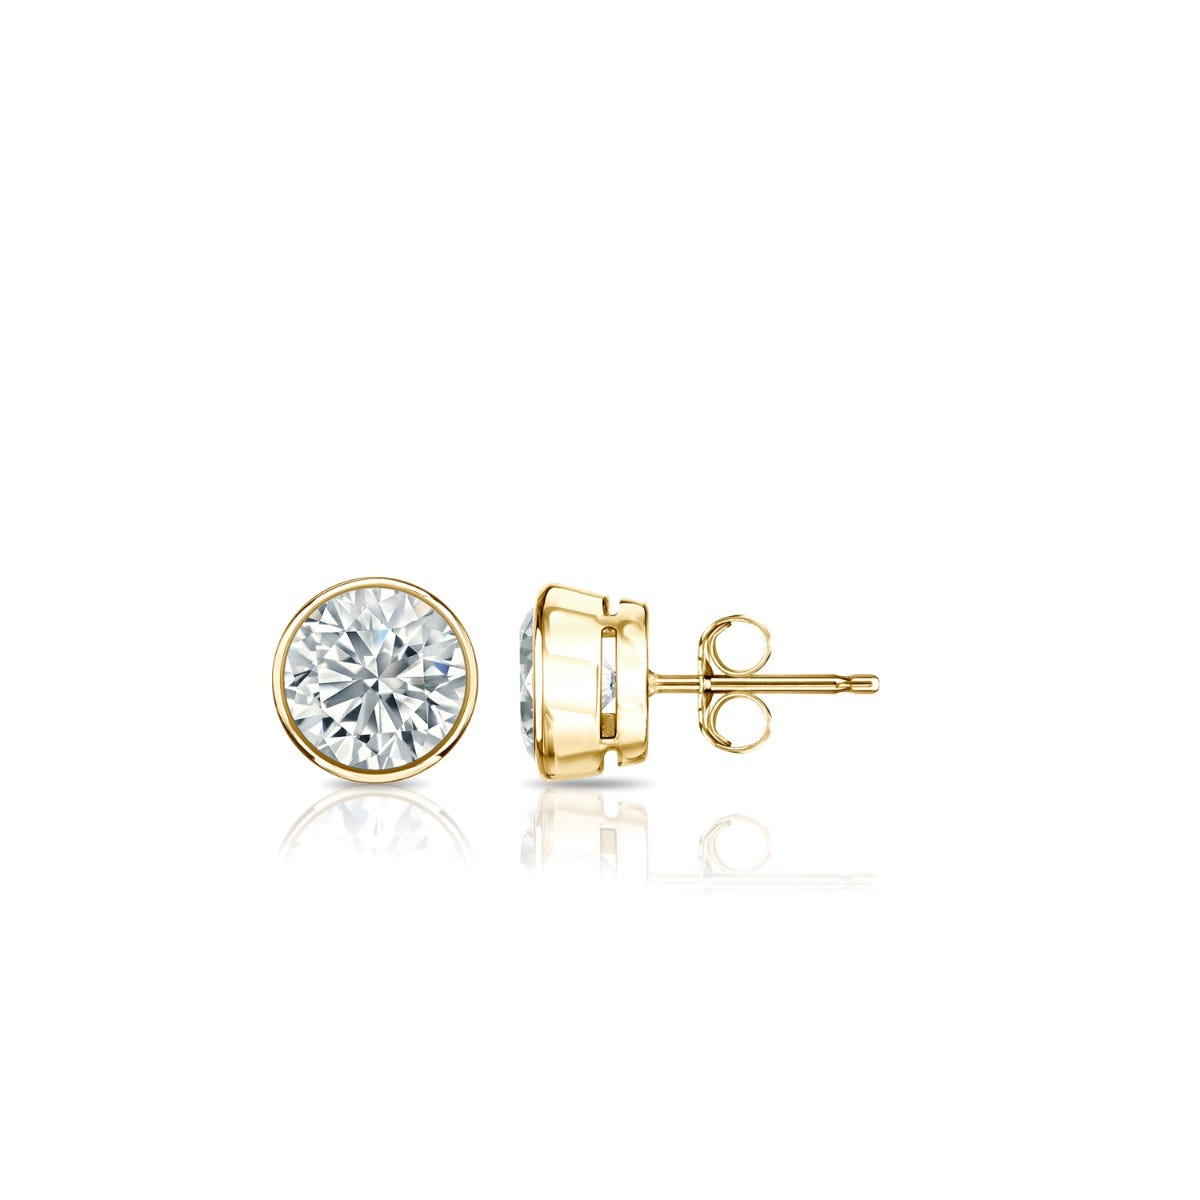 Diamond Round Bezel-Set 1/3ctw. Solitaire Stud (IJ-SI1) Earrings in 18K Yellow Gold